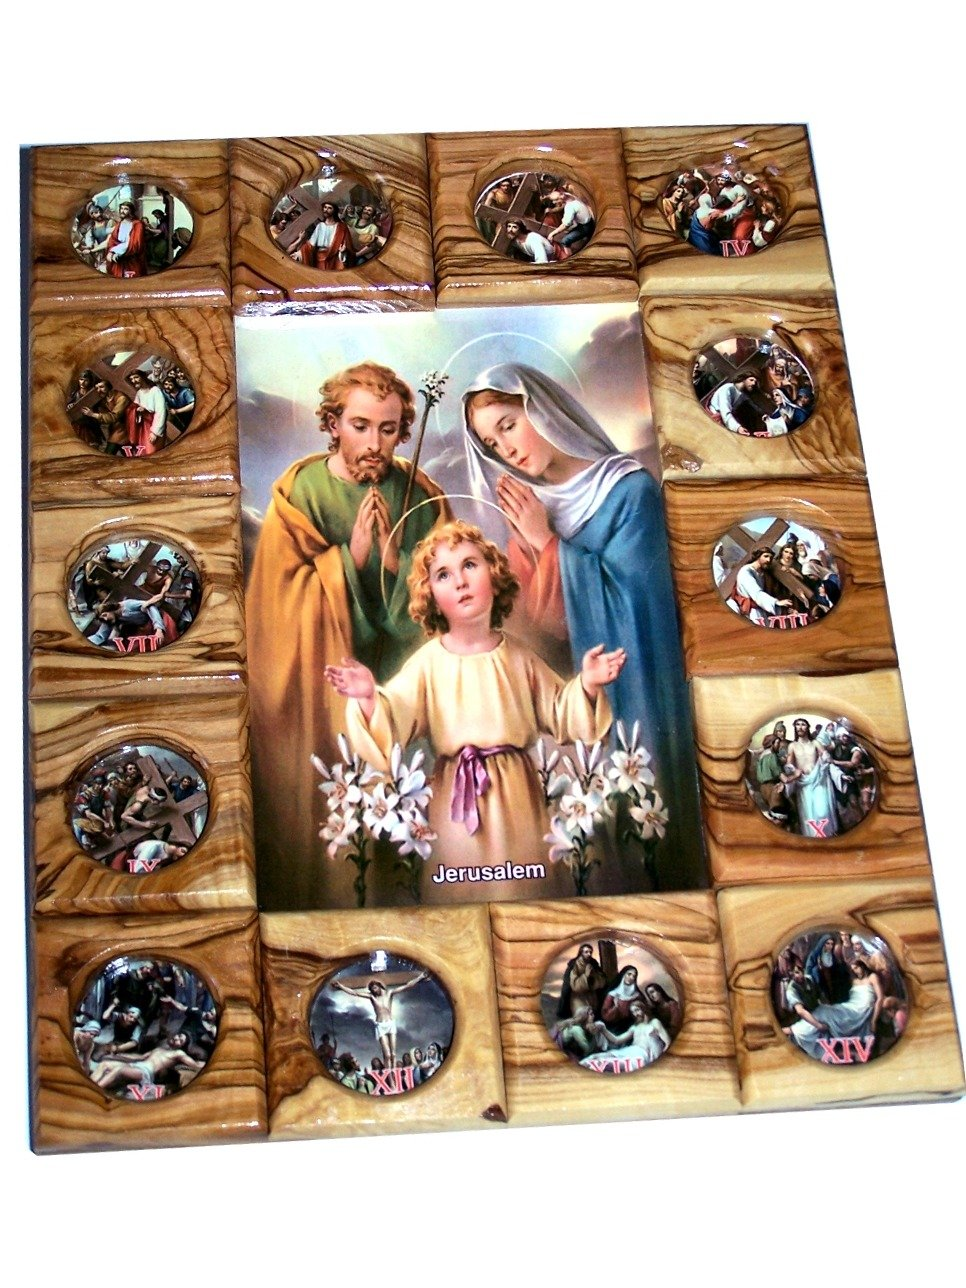 Holy Family with Stations of The Cross Icon Plaque All in Olive Wood from Bethlehem 29 x 24 cm or 11.5 x 9.5 inches